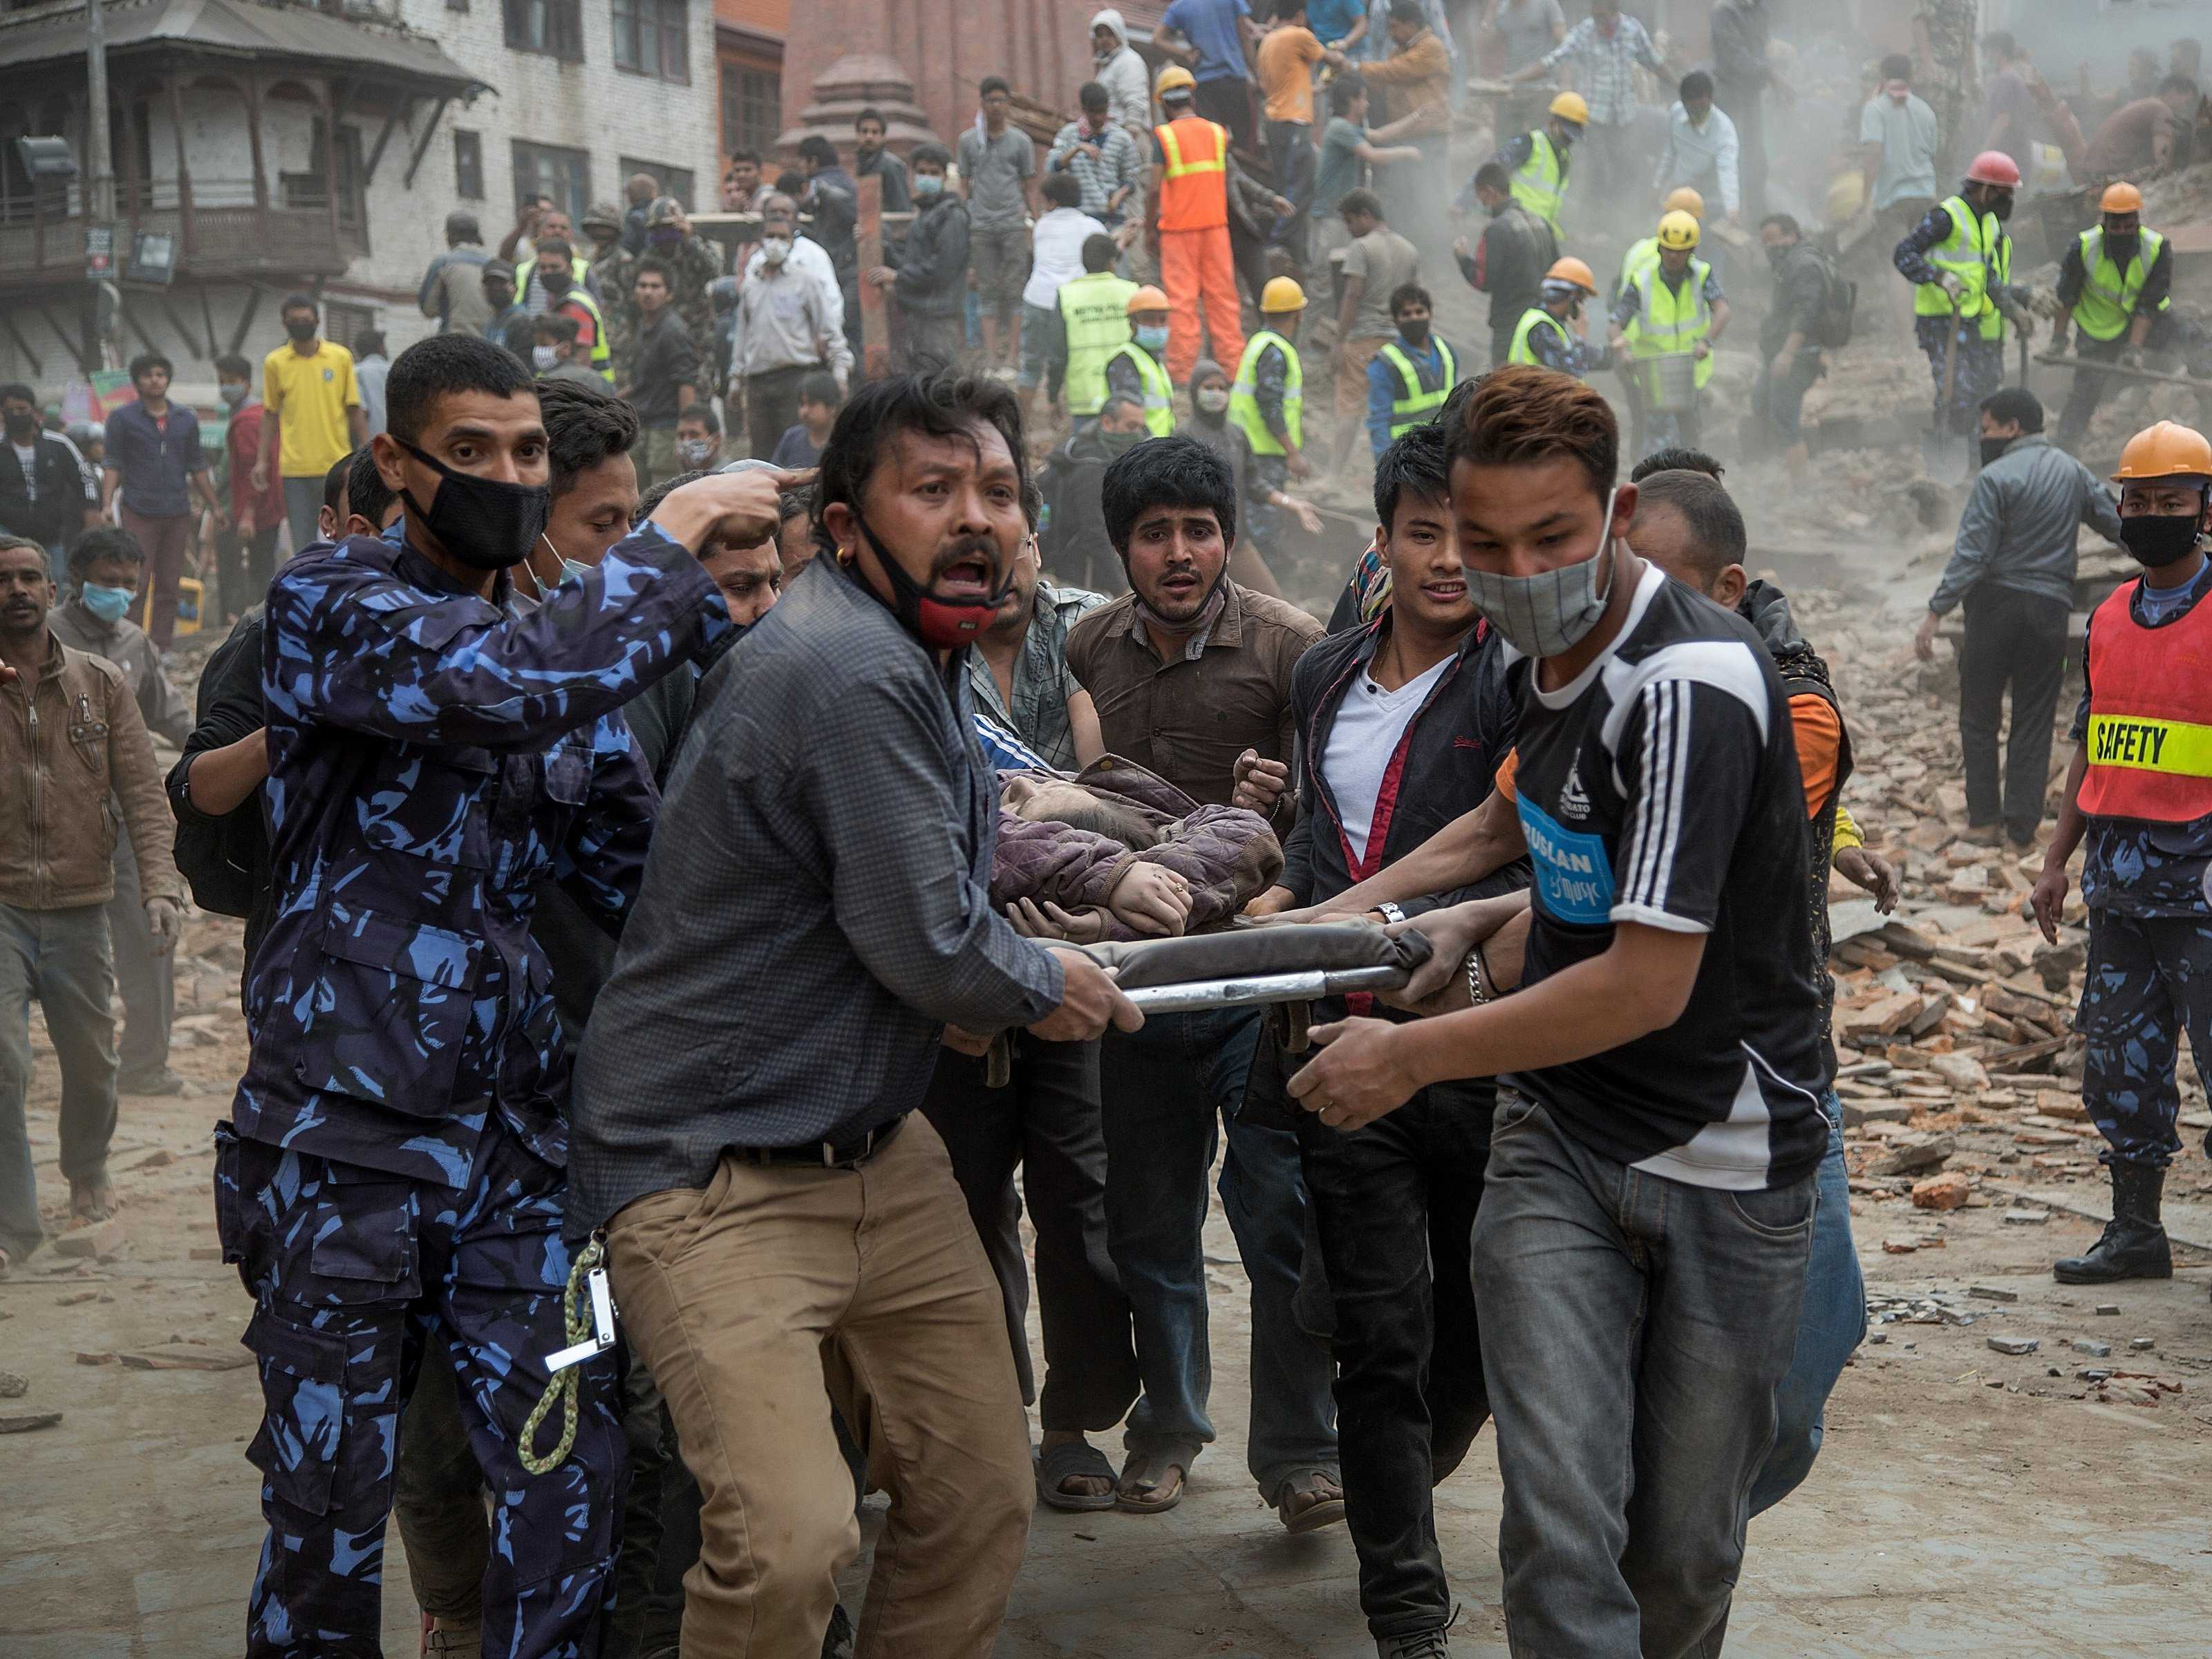 massive-earthquake-rocks-nepal-killing-everest-climbers-leveling-historic-buildings-and-killing-thousands-more-villagers